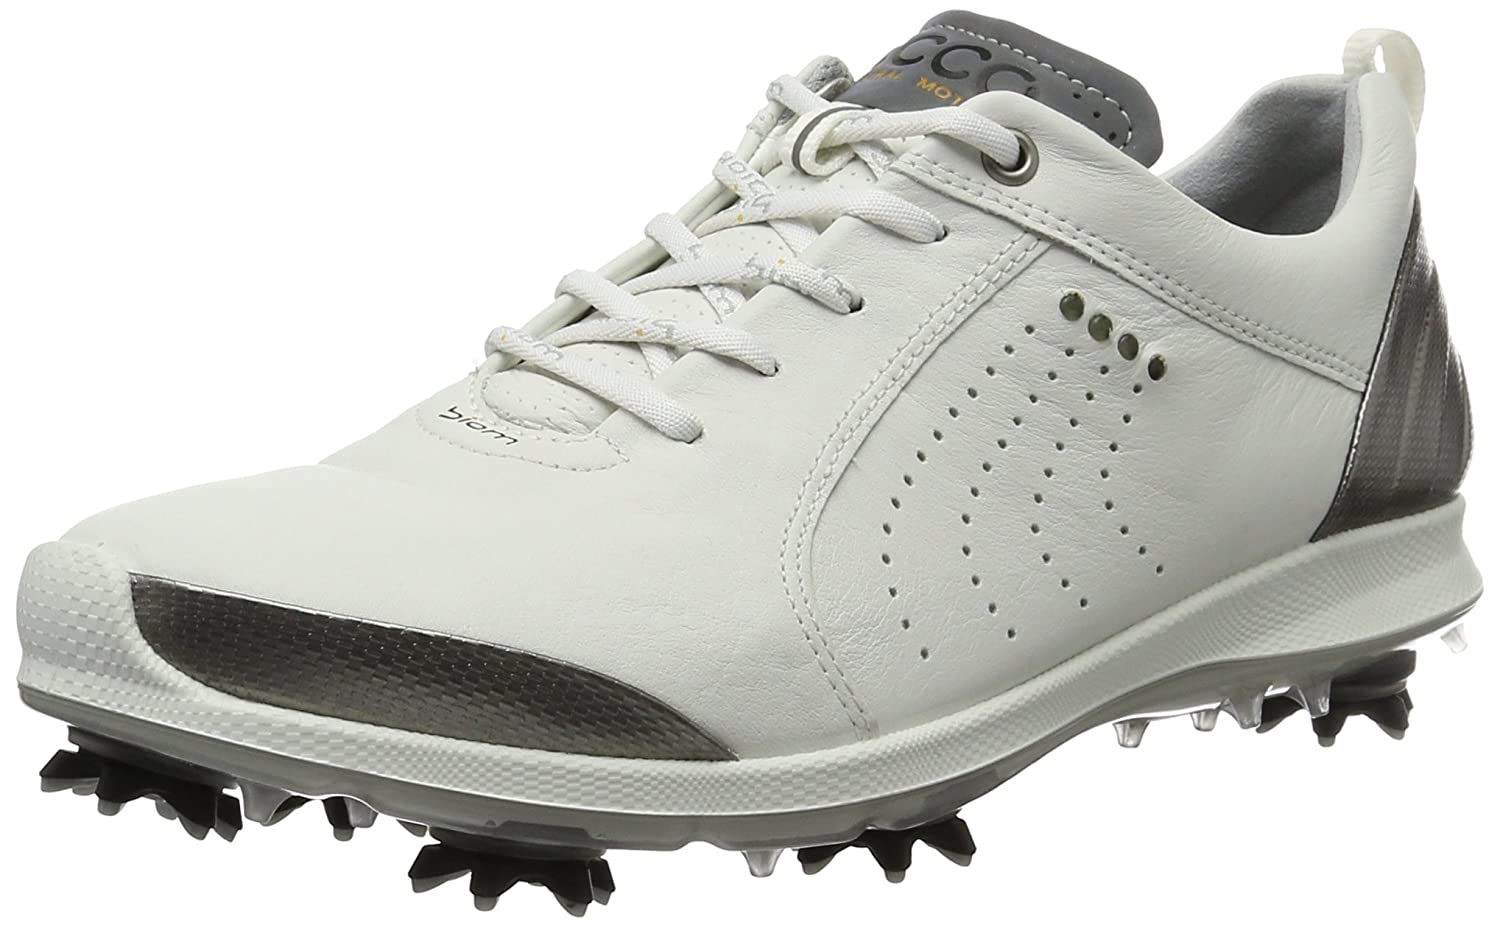 ECCO Golf Womens Biom G 2 Free B01KIKI3LE 36 EU/5-5.5 M US|White/Buffed Silver